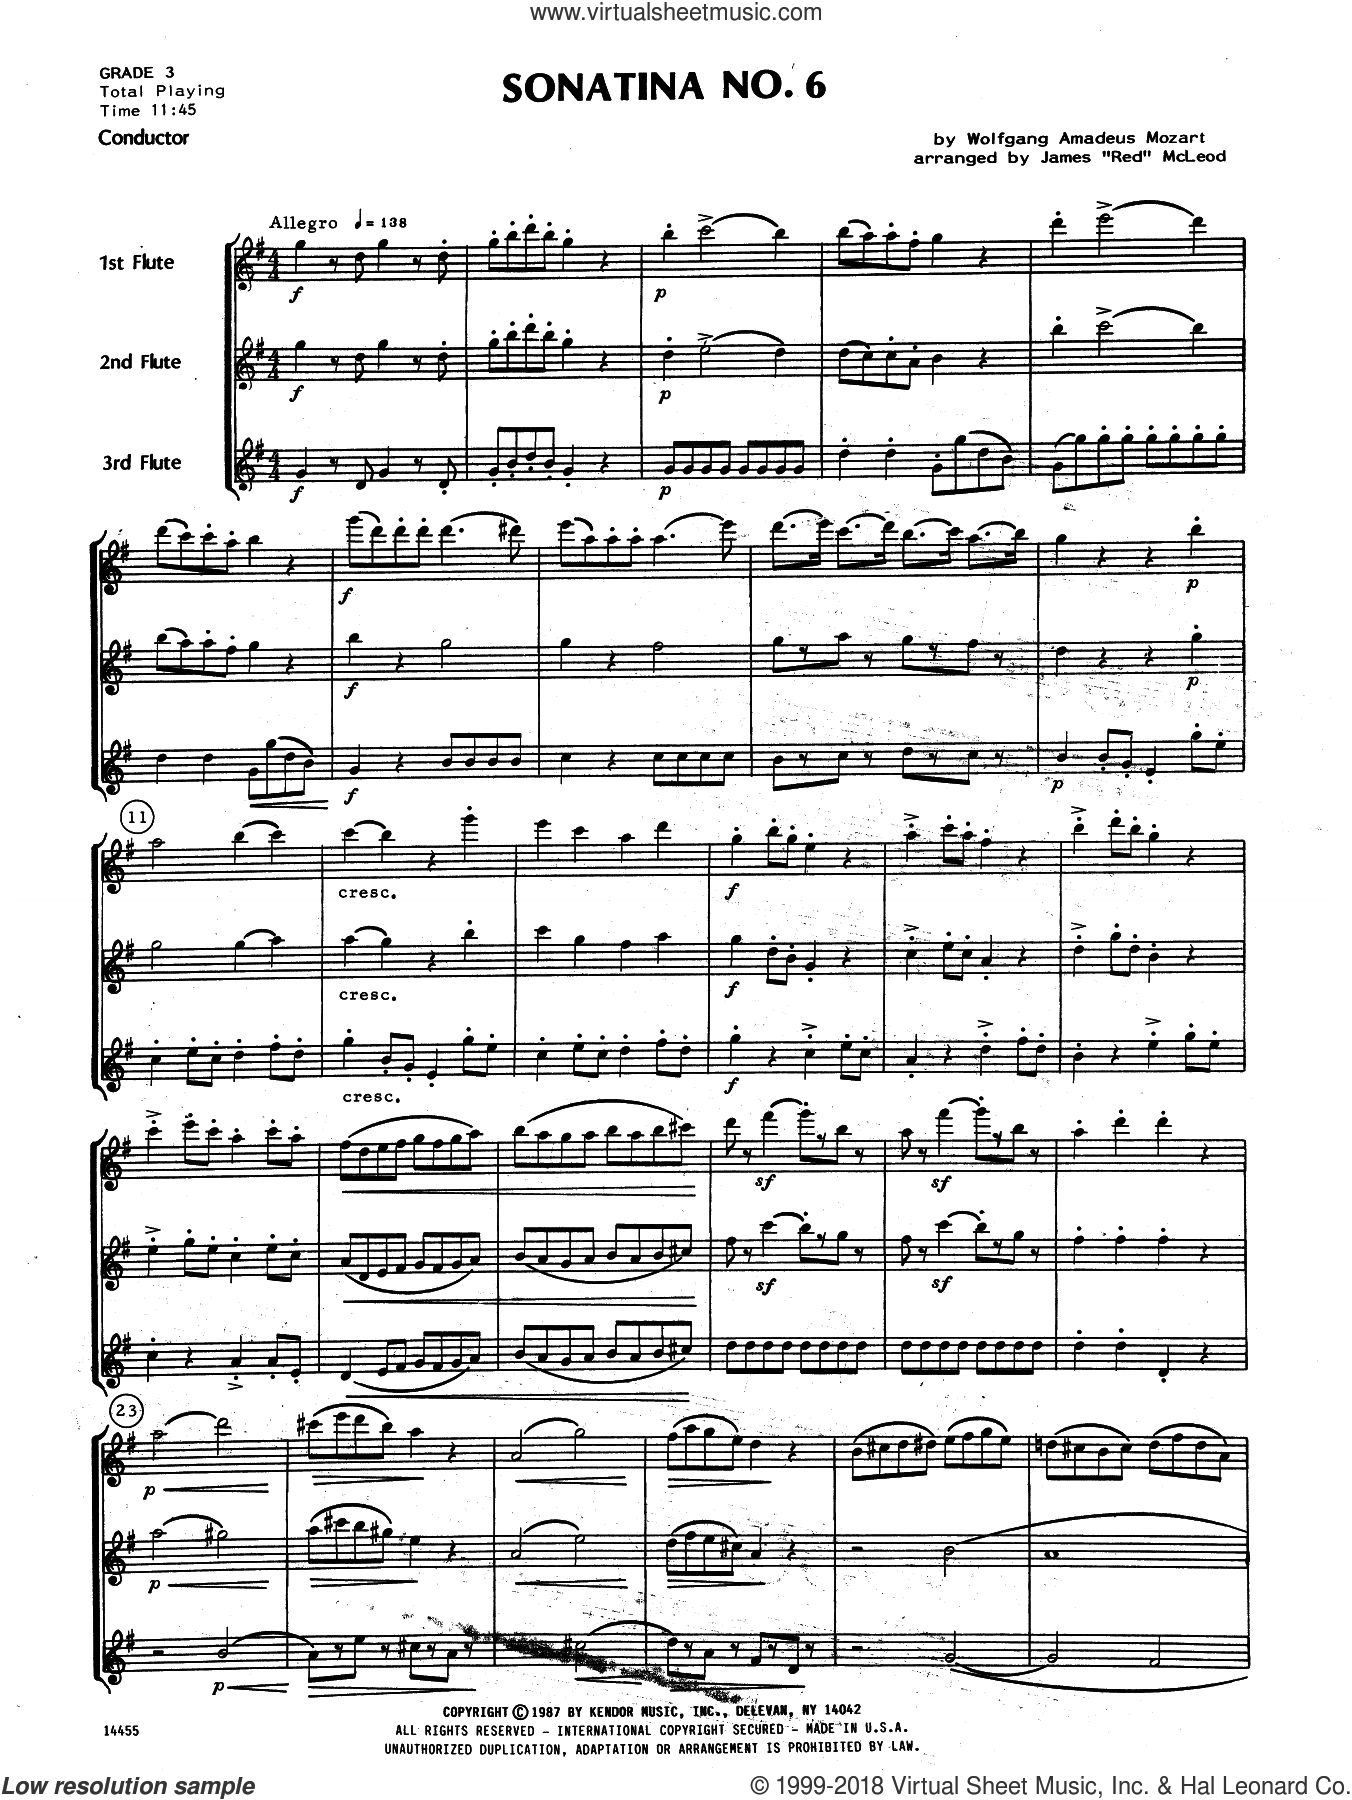 Sonatina No. 6 (COMPLETE) sheet music for flute trio by Wolfgang Amadeus Mozart and James 'Red' McLeod, classical score, intermediate skill level